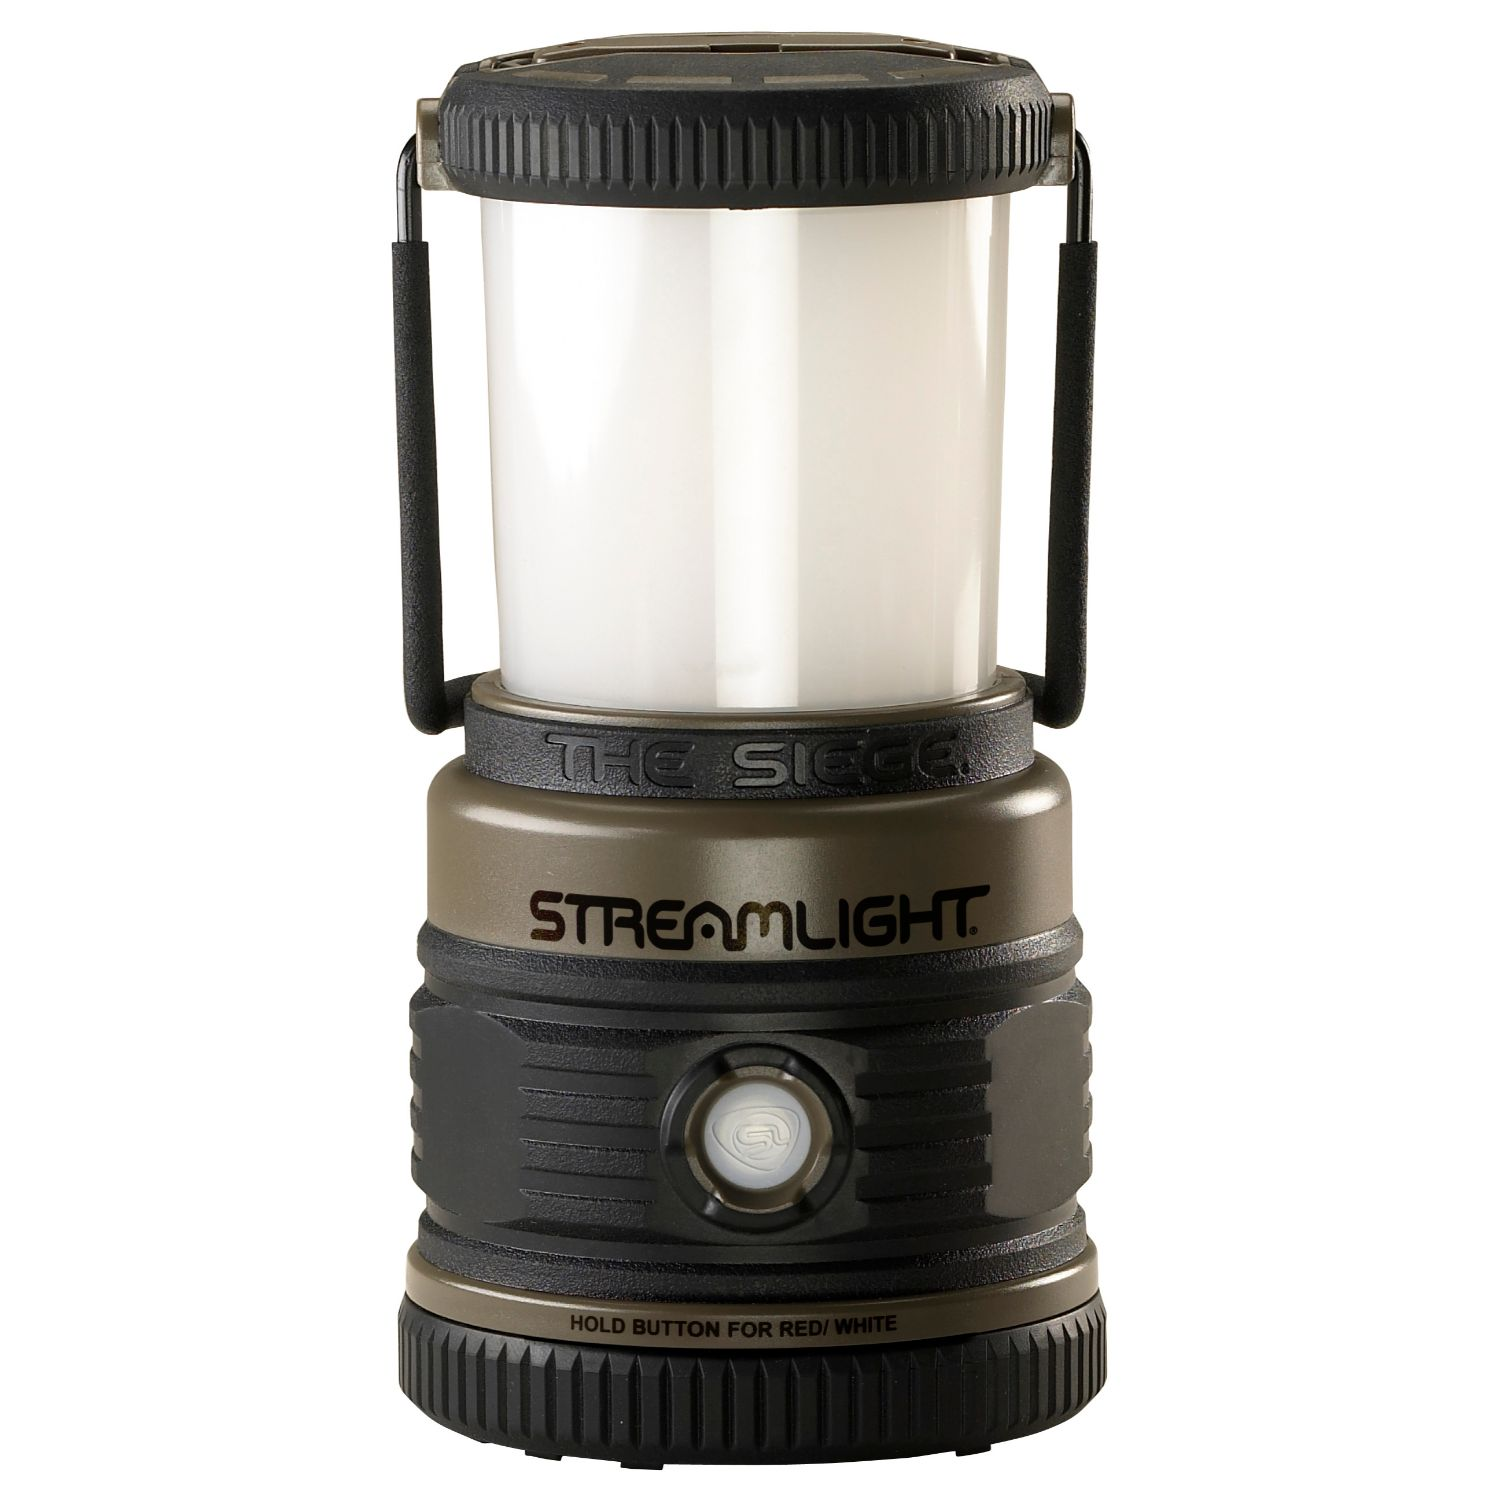 Streamlight Siege Rugged and Compact Outdoor Lantern